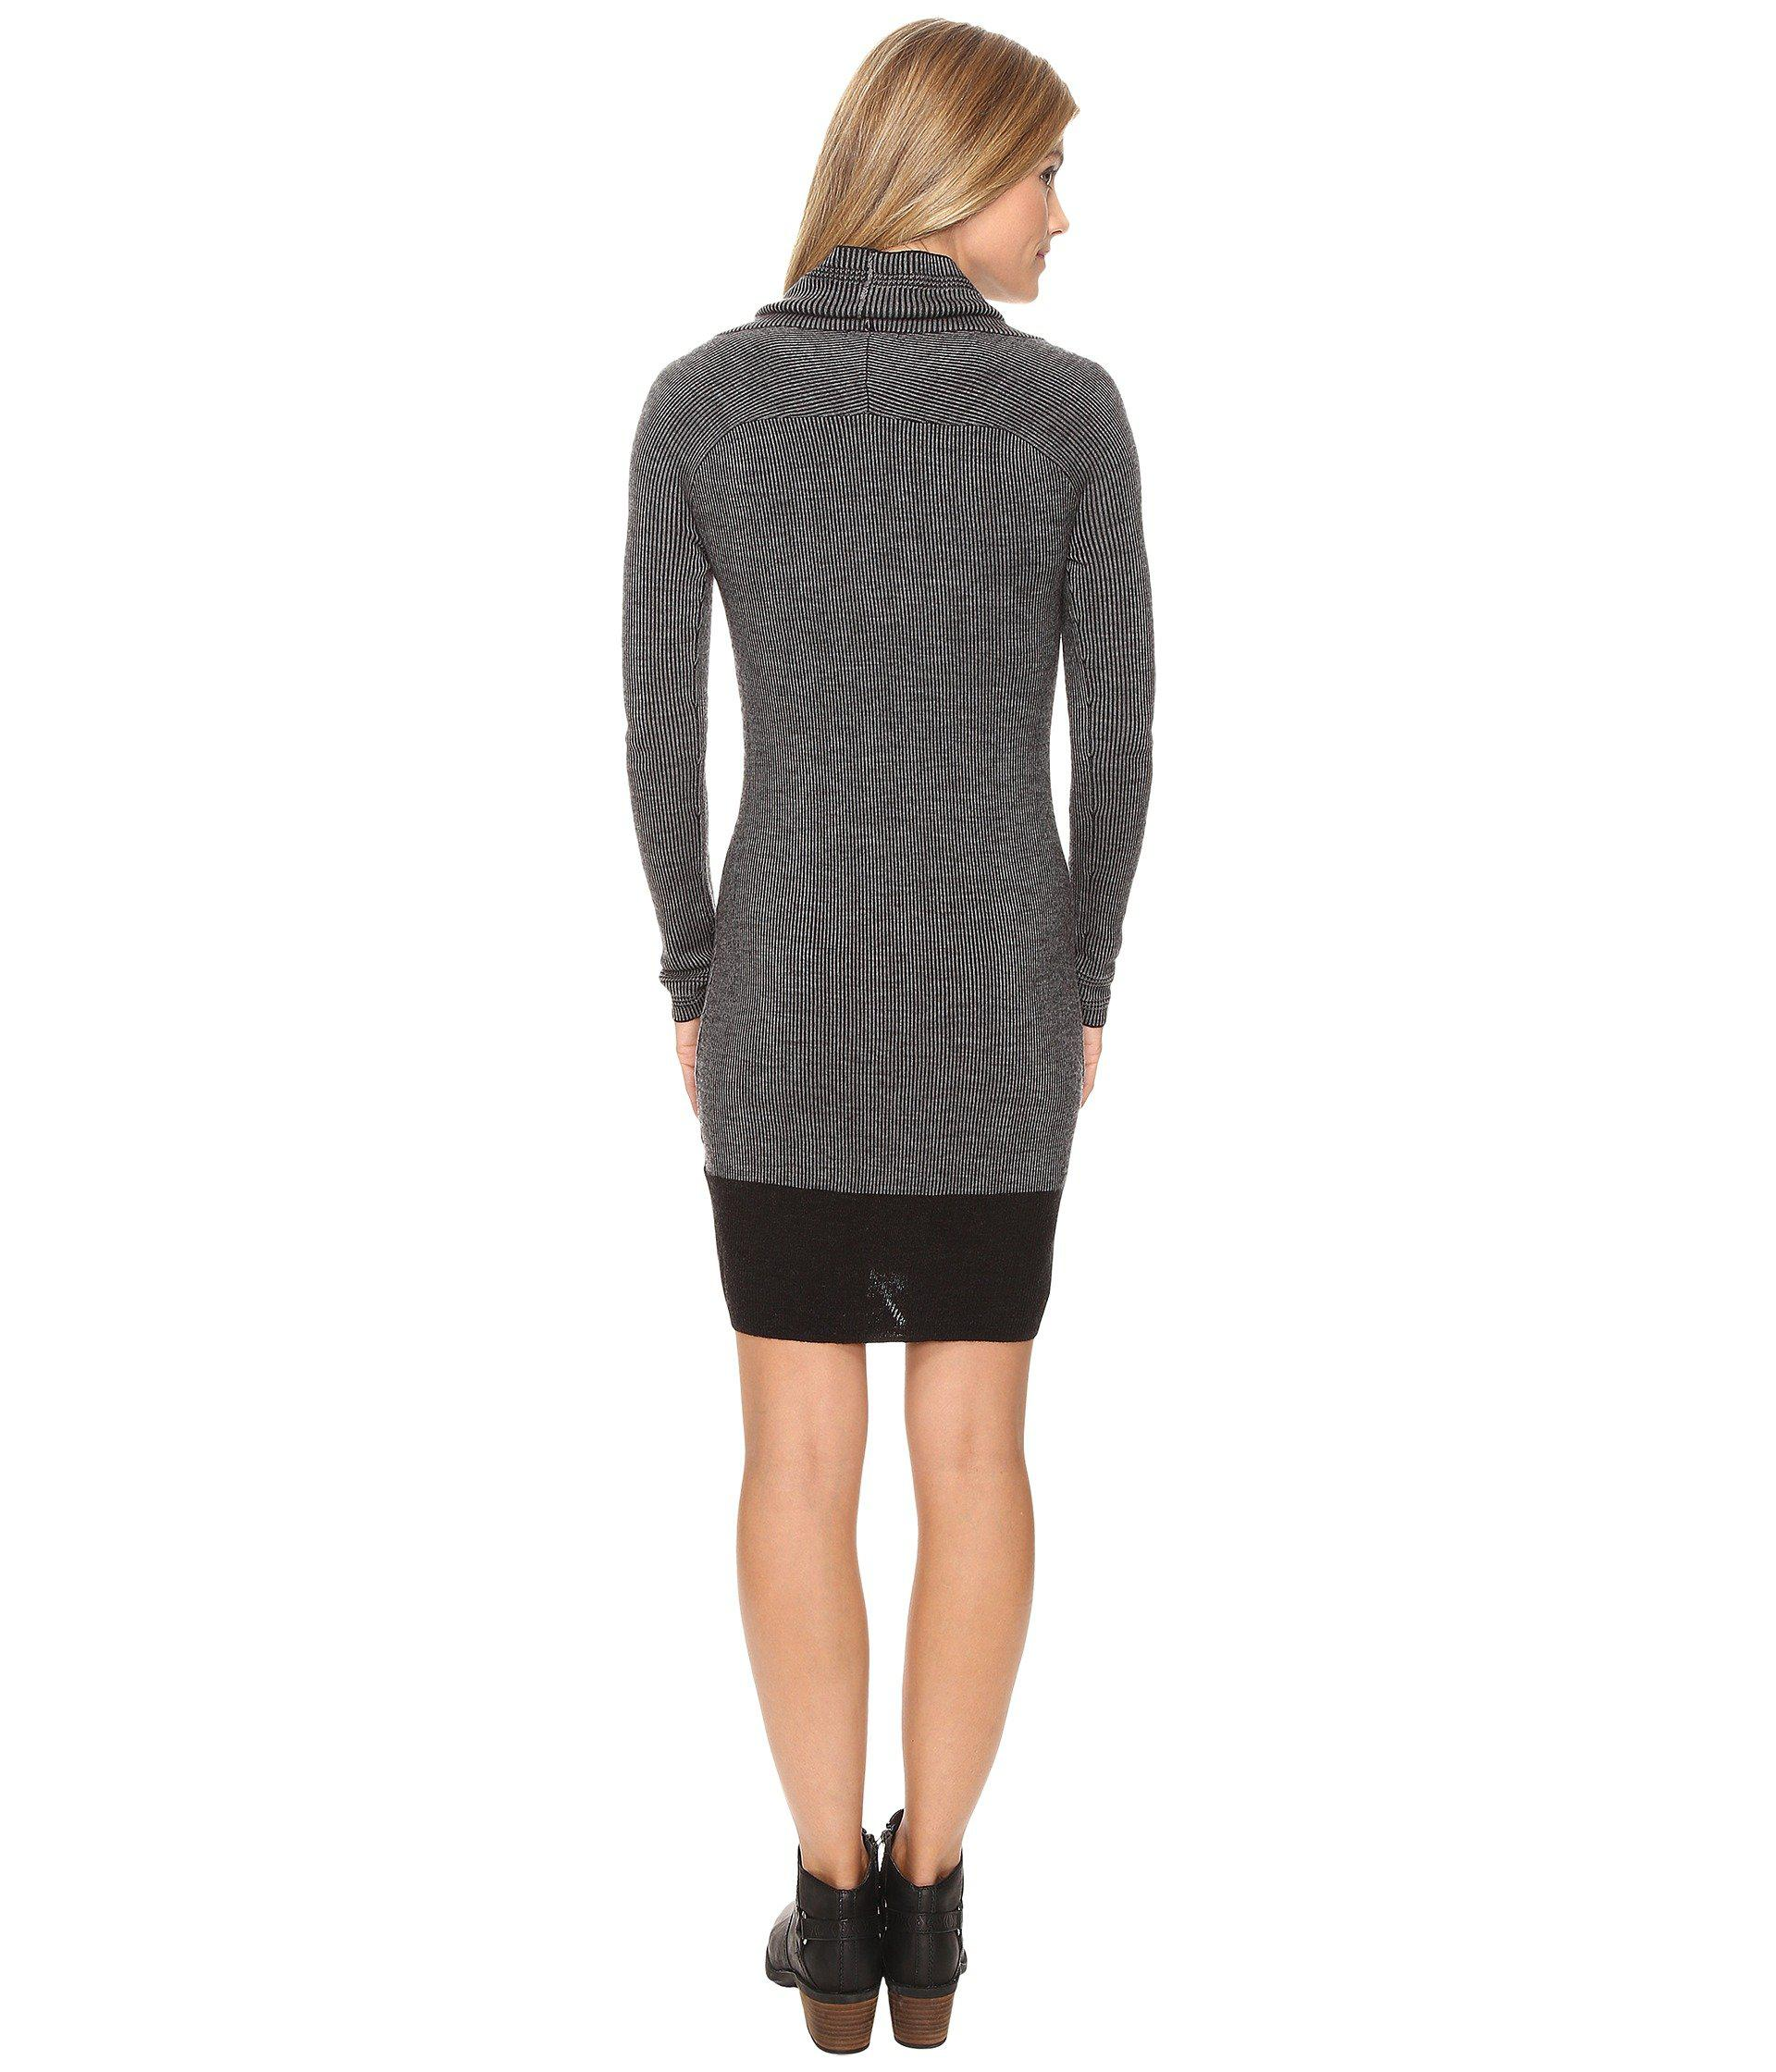 9bfda823469a9 Lyst - Toad Co Uptown Sweater Dress in Black - Save 56.41025641025641%